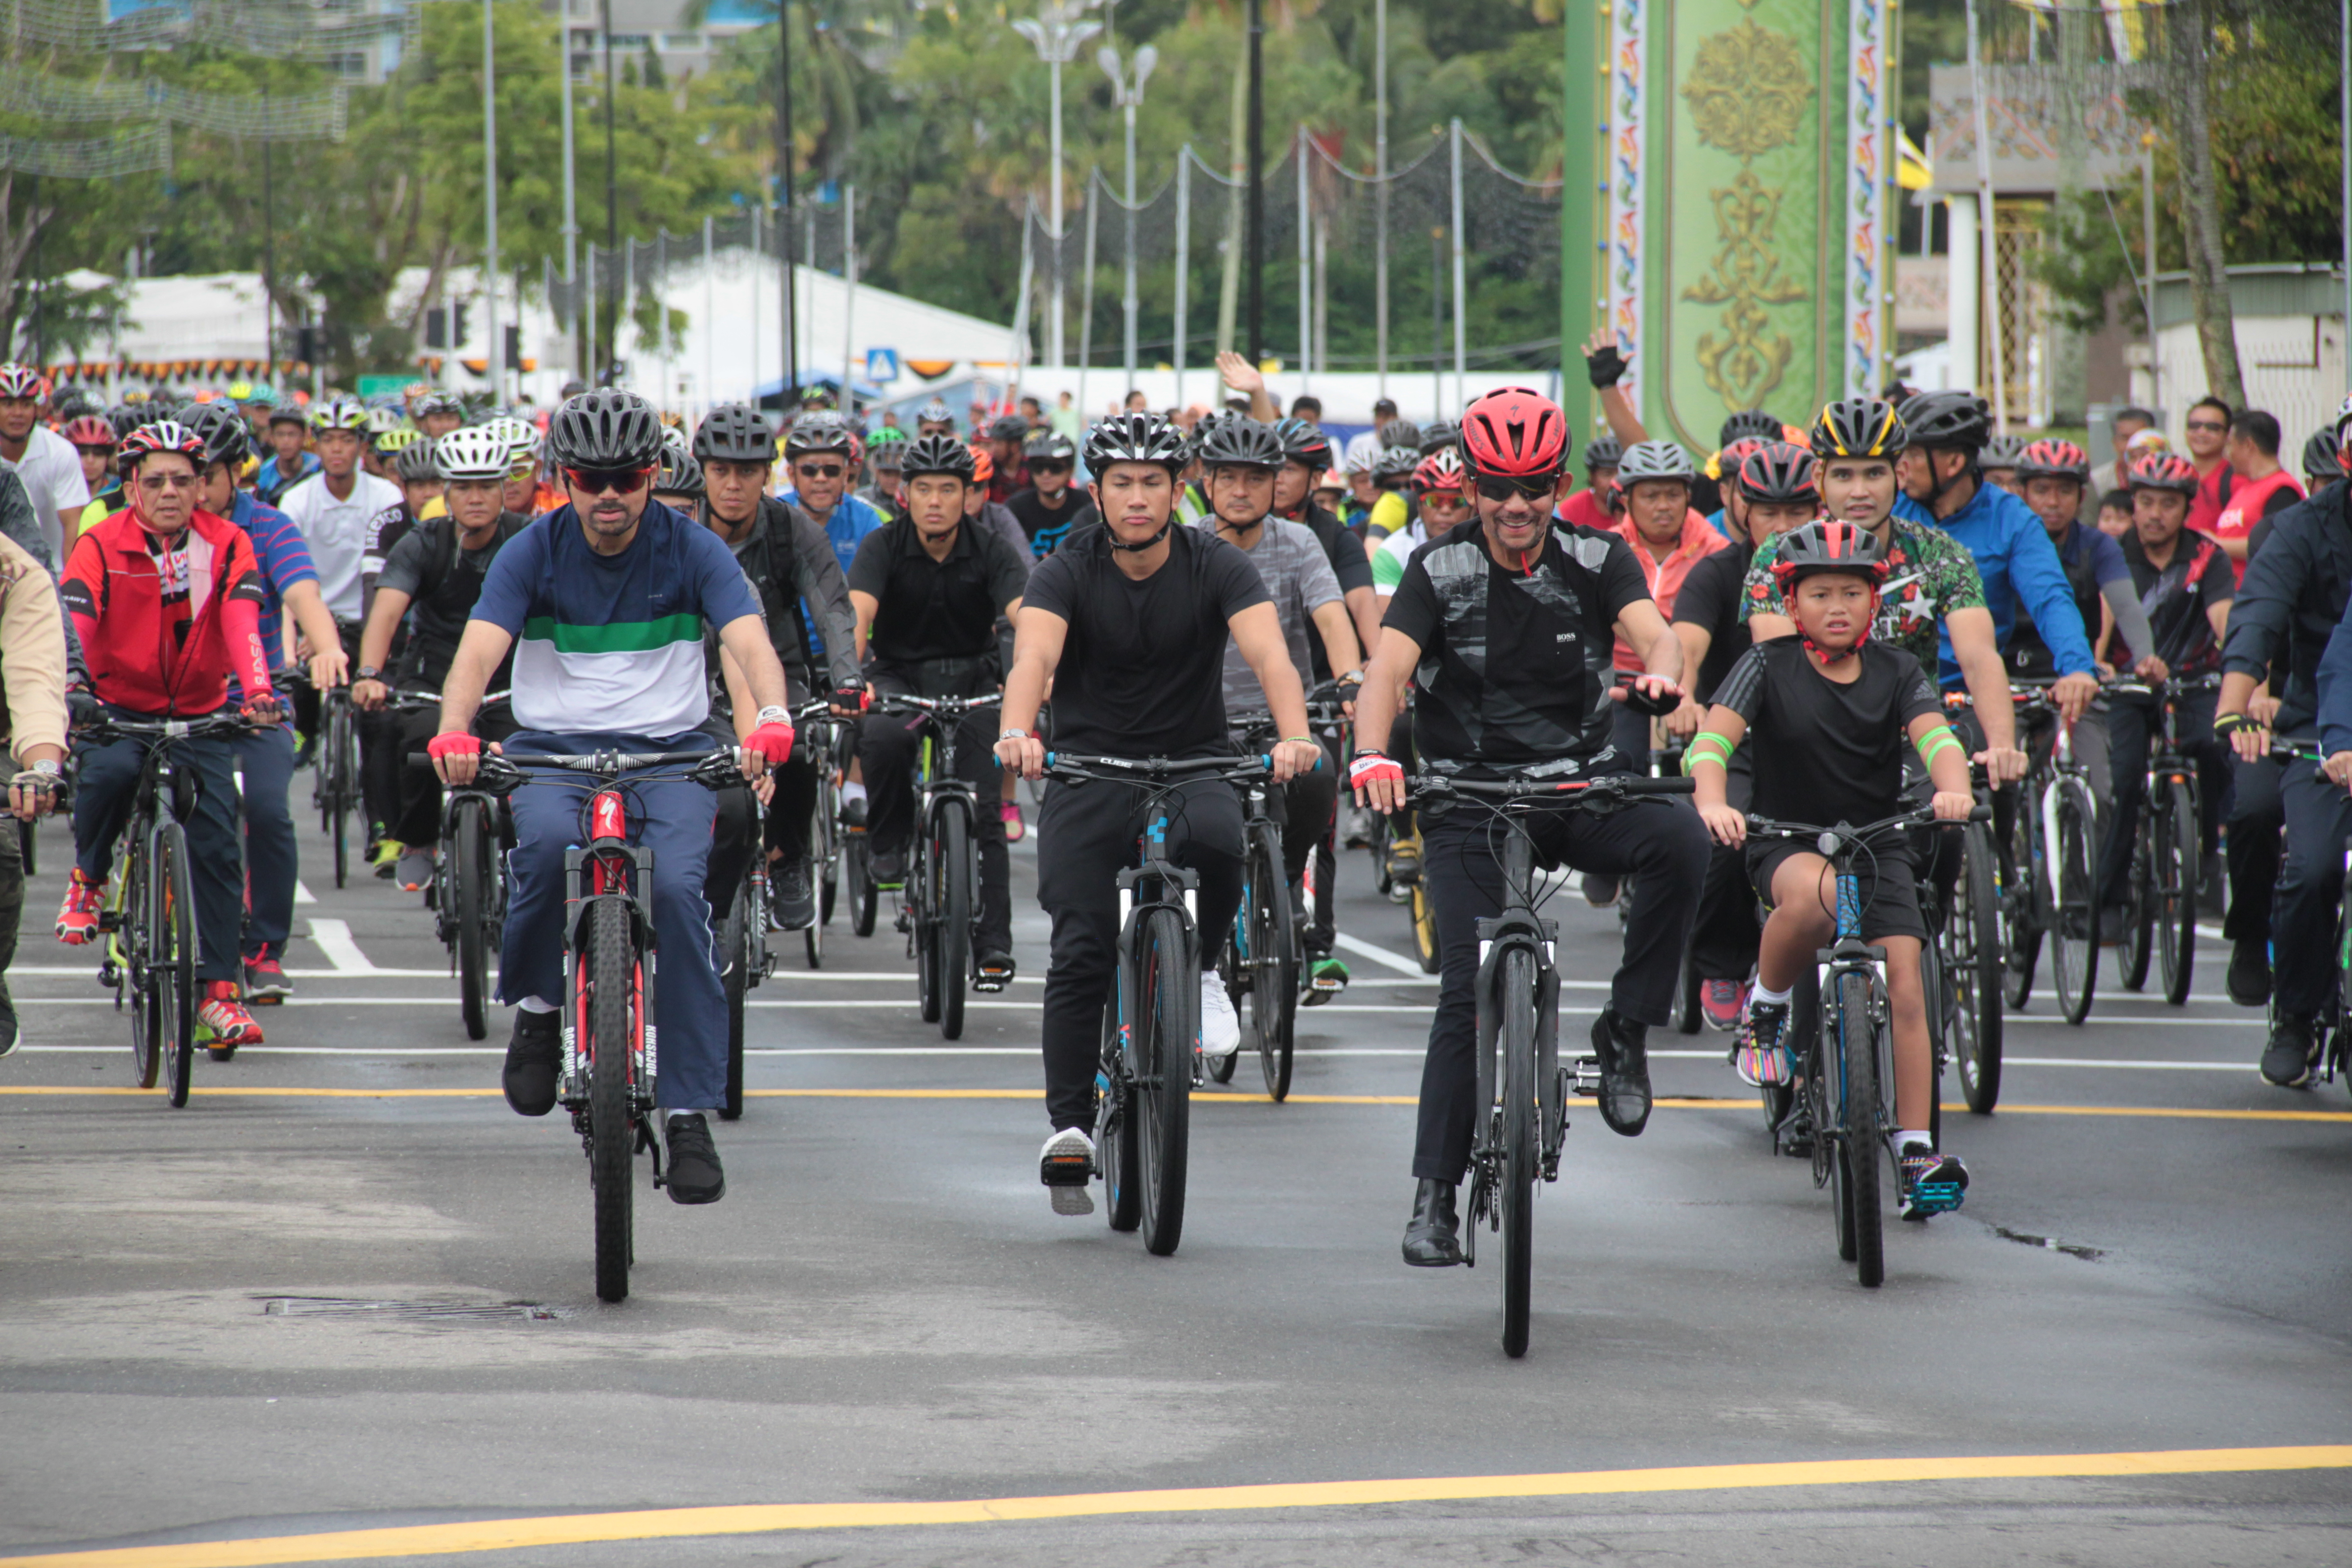 His Majesty the Sultan during the Golden Jubilee Cycling Expedition in Bandar Seri Begawan. Photo: Ubaidillah Masli/The Scoop